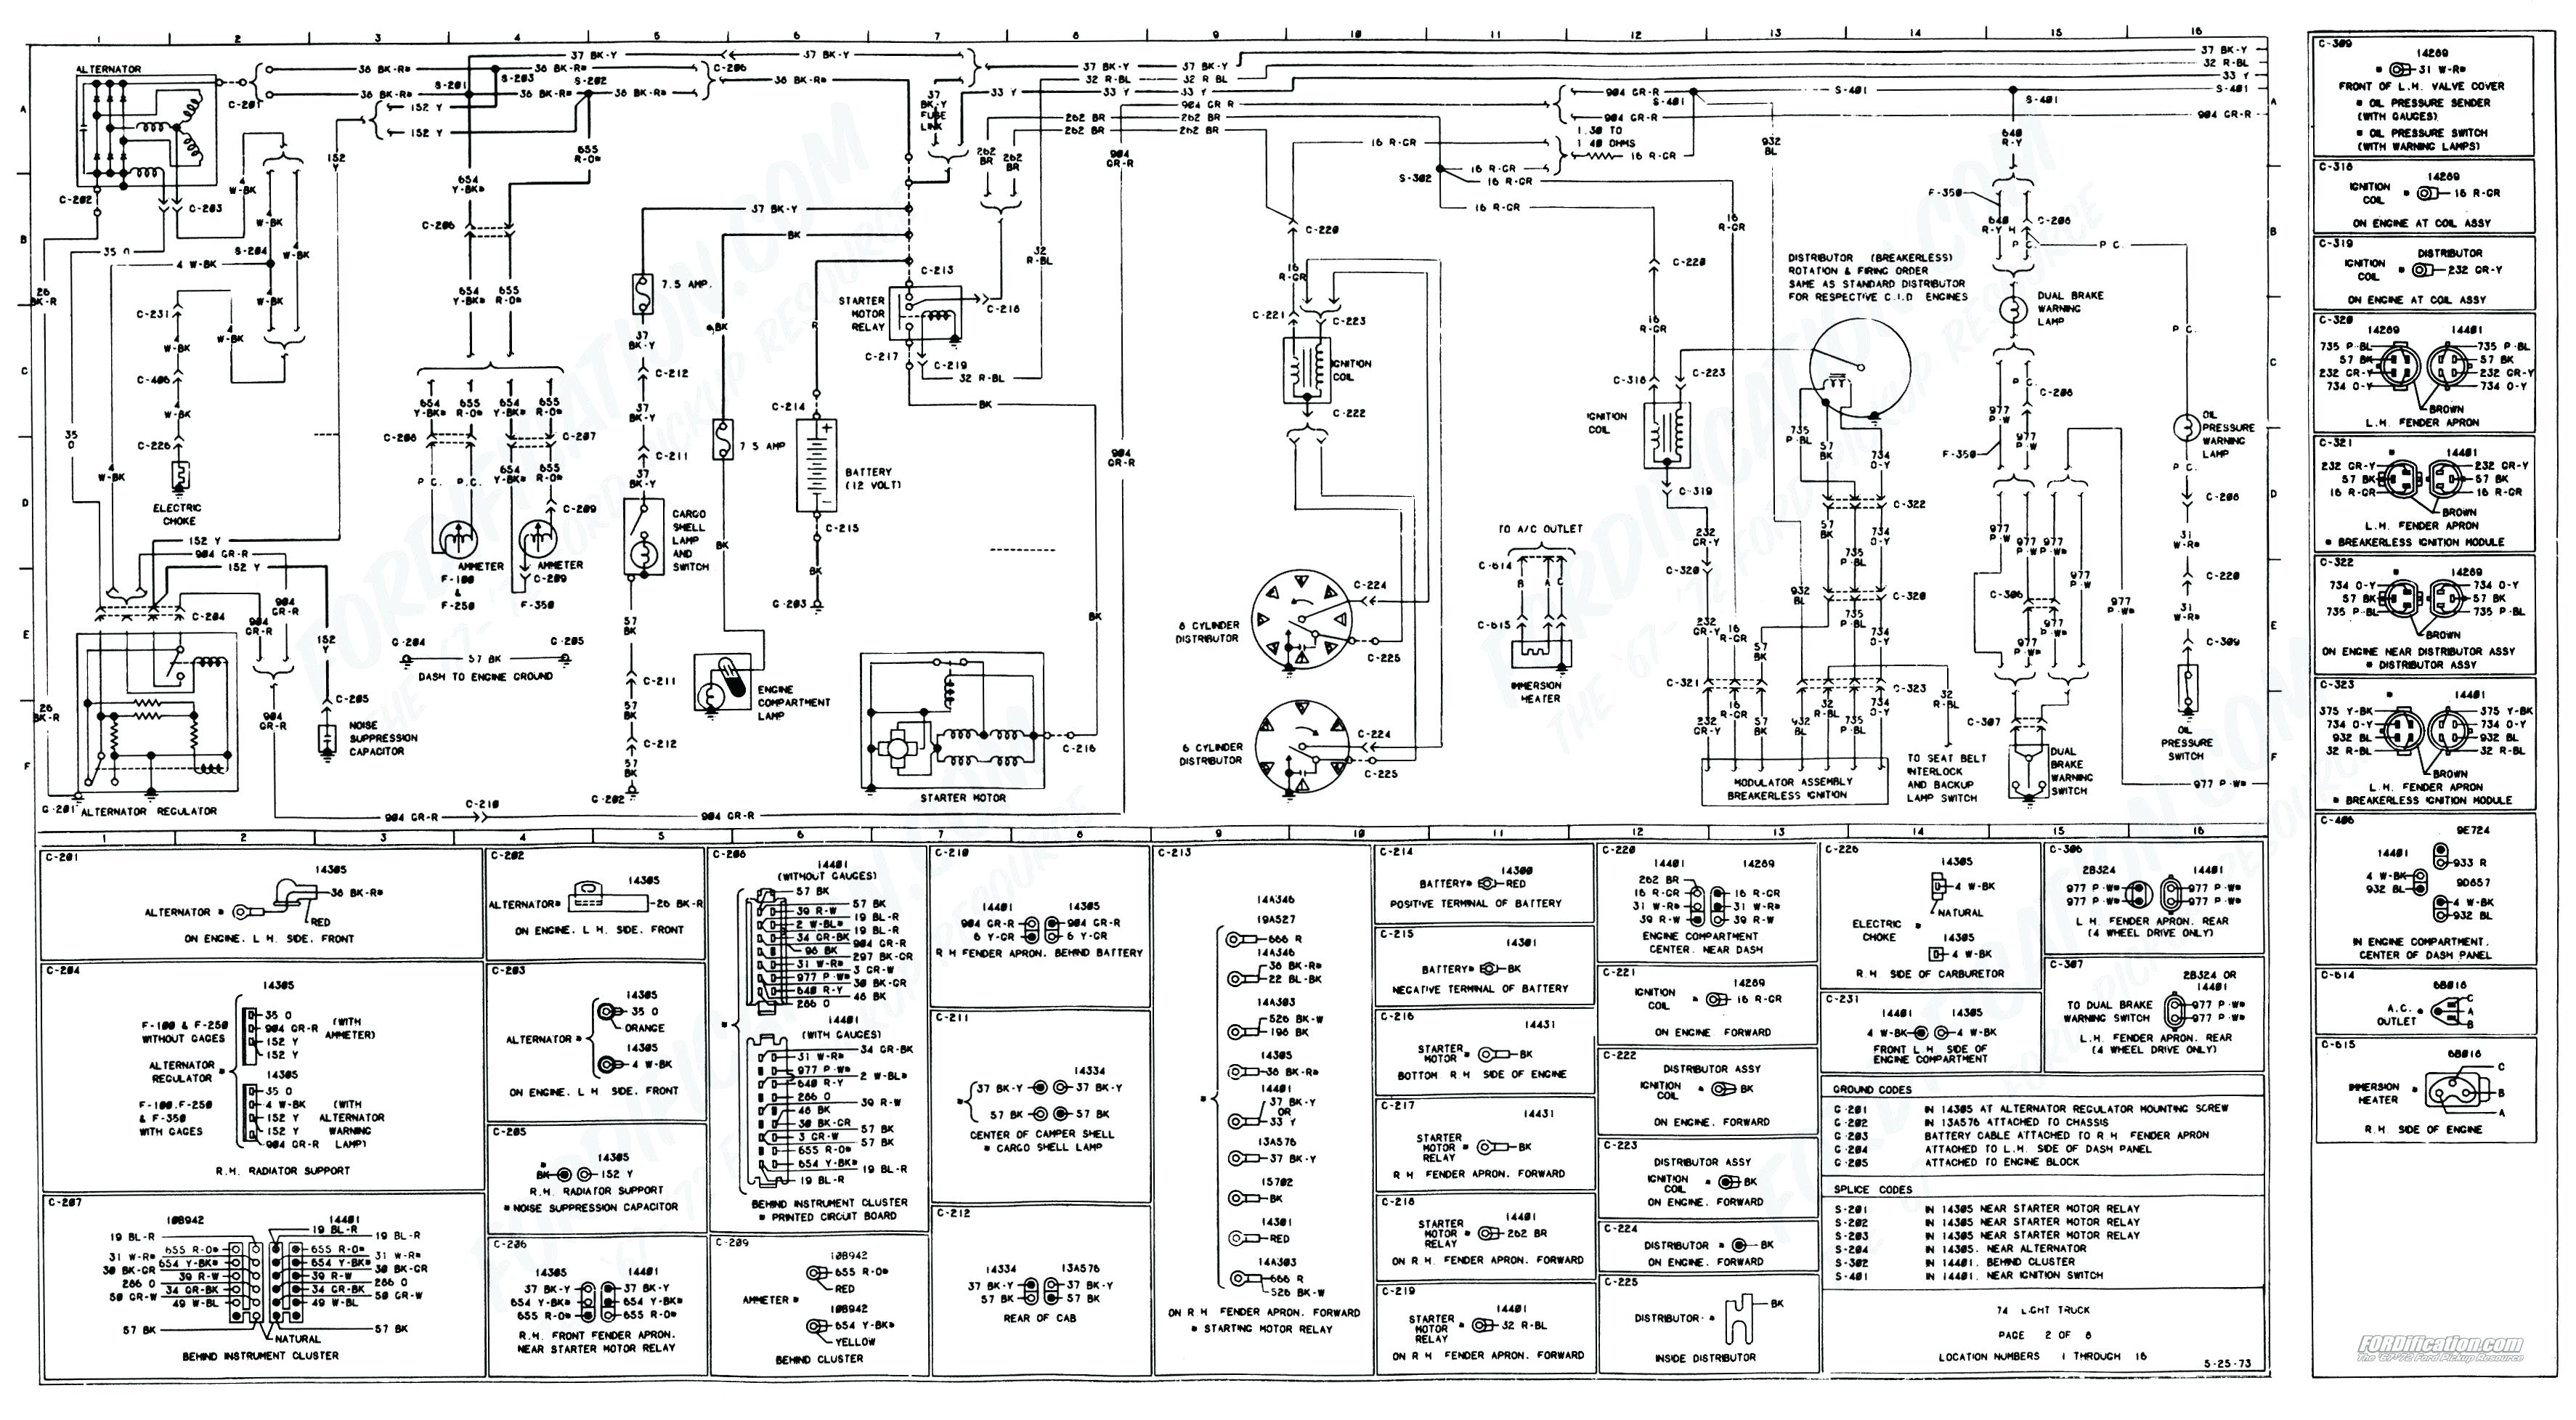 Ford F650 Wiring Diagram Gallery 2008 Ford F450 Fuse Box Diagram Ford F650  Fuse Box Diagram